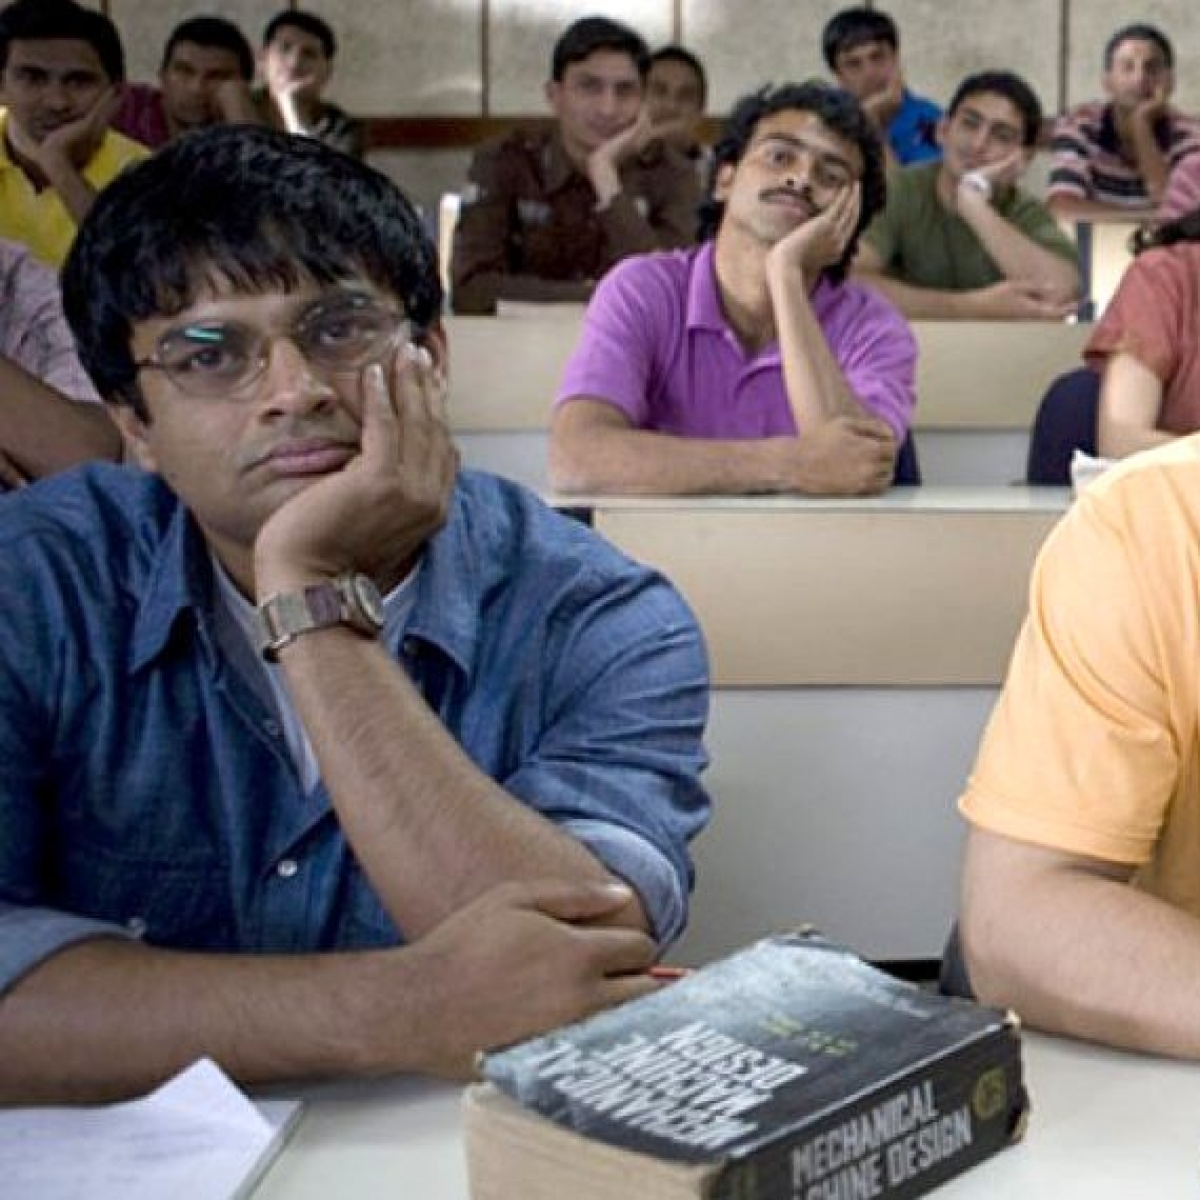 After Aamir Khan, R Madhavan tests positive for COVID-19; shares hilarious '3 Idiots' joke to inform 'all is well'